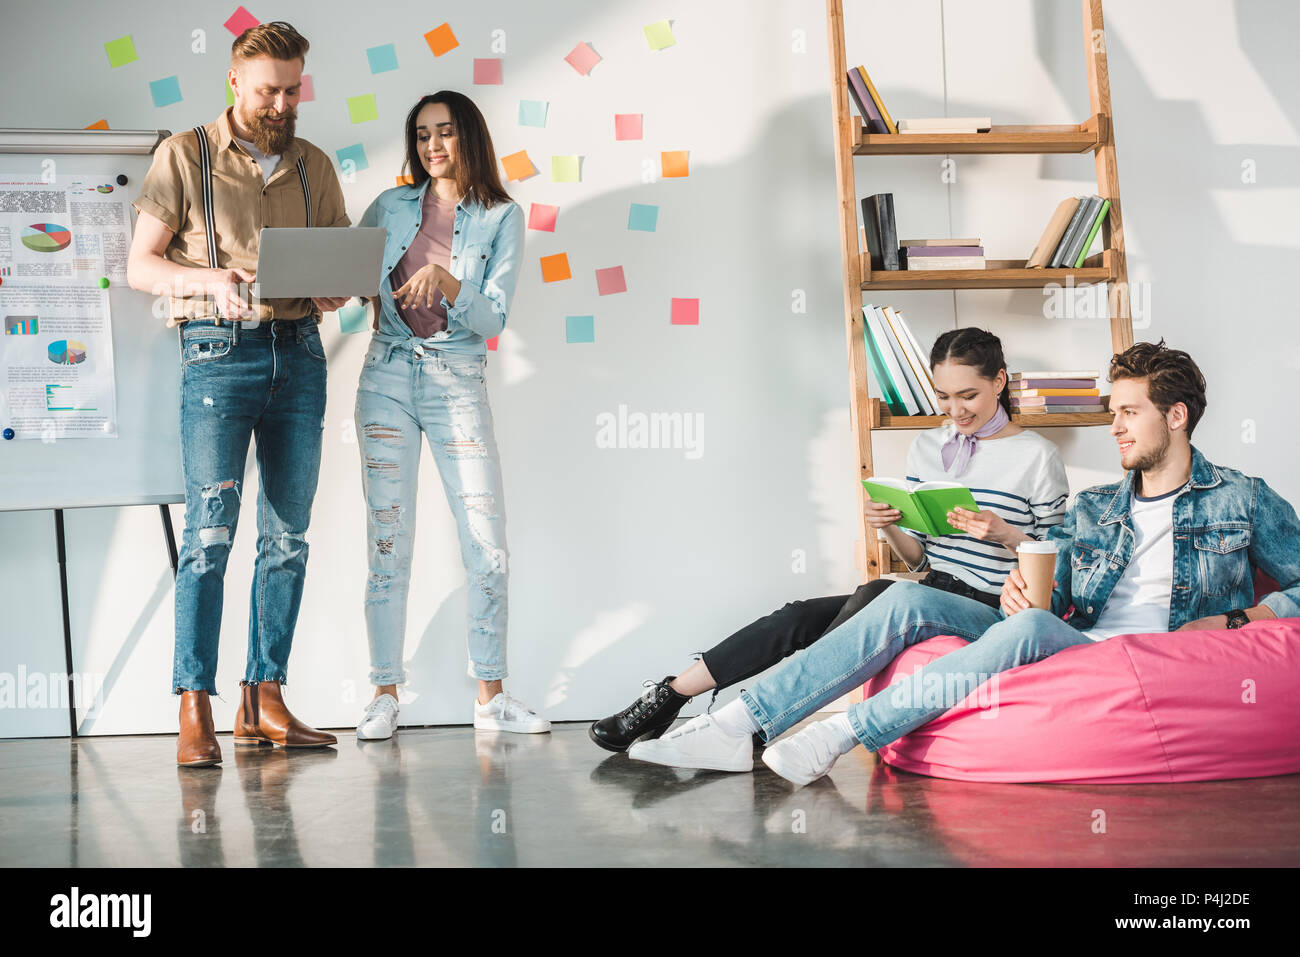 Professional business colleagues men and women in modern office with white board - Stock Image